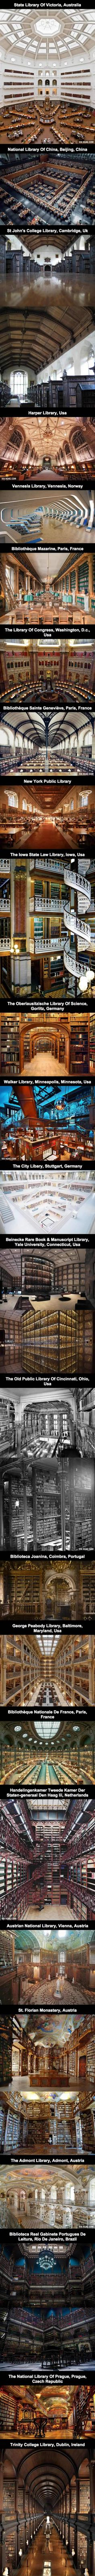 The Most Amazing Libraries In The World